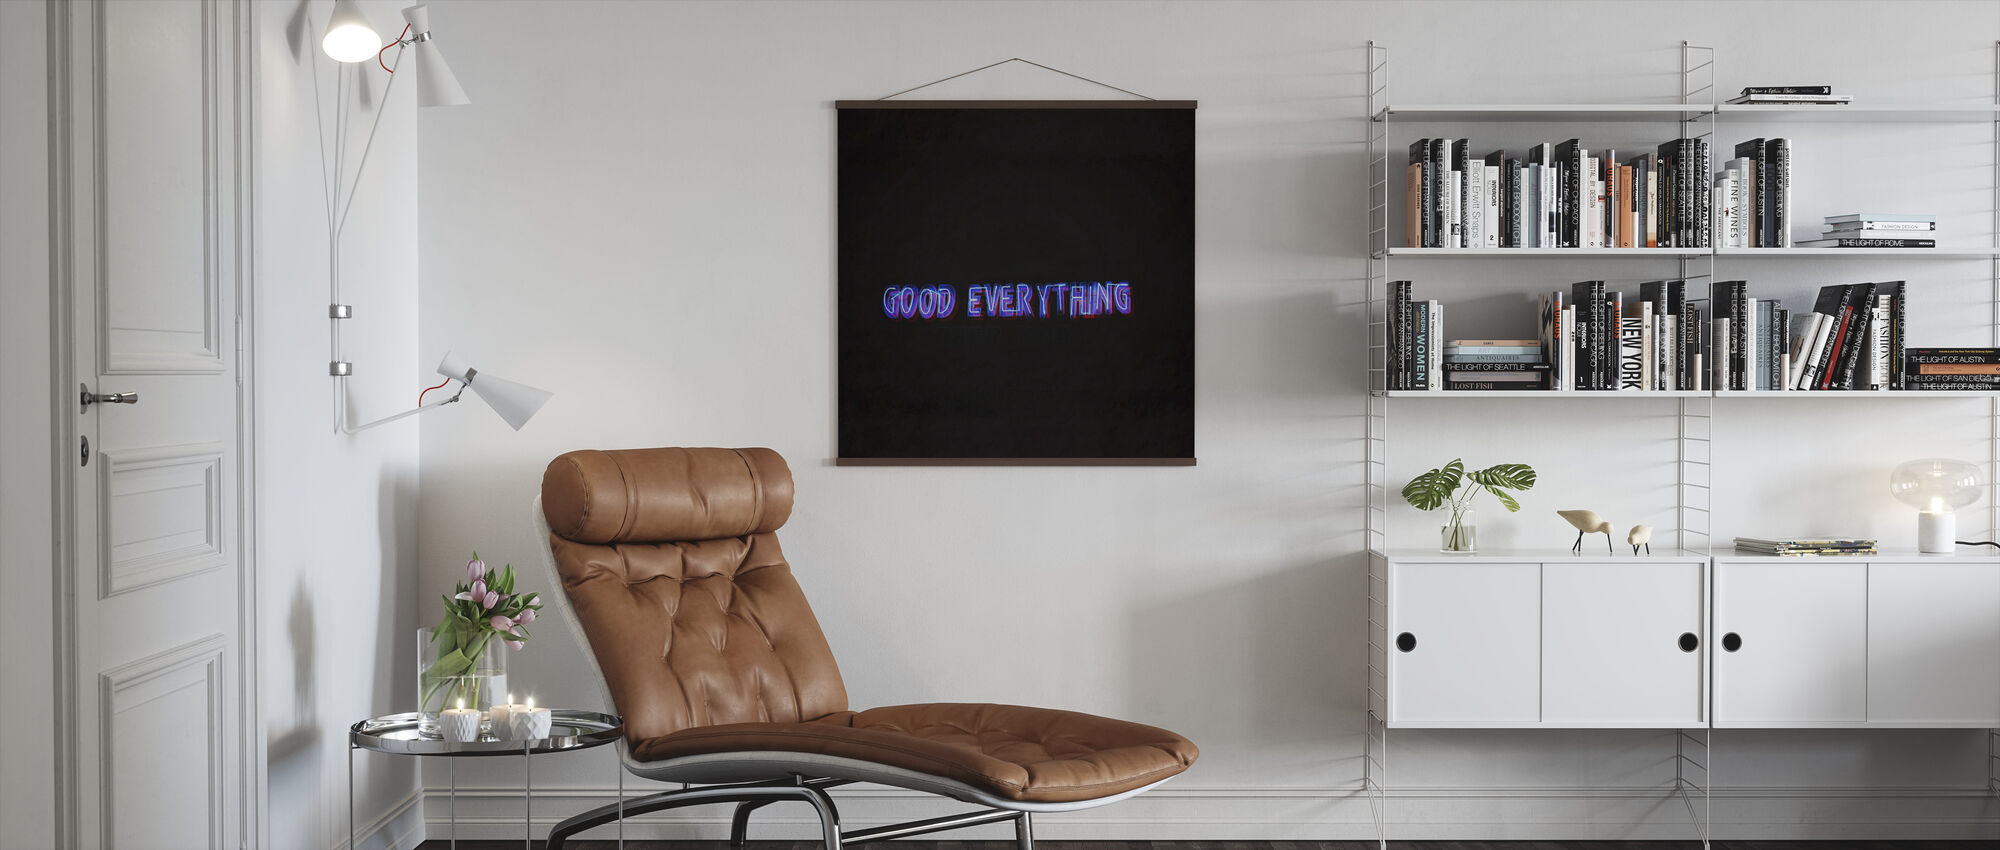 Good Everything - Poster - Living Room